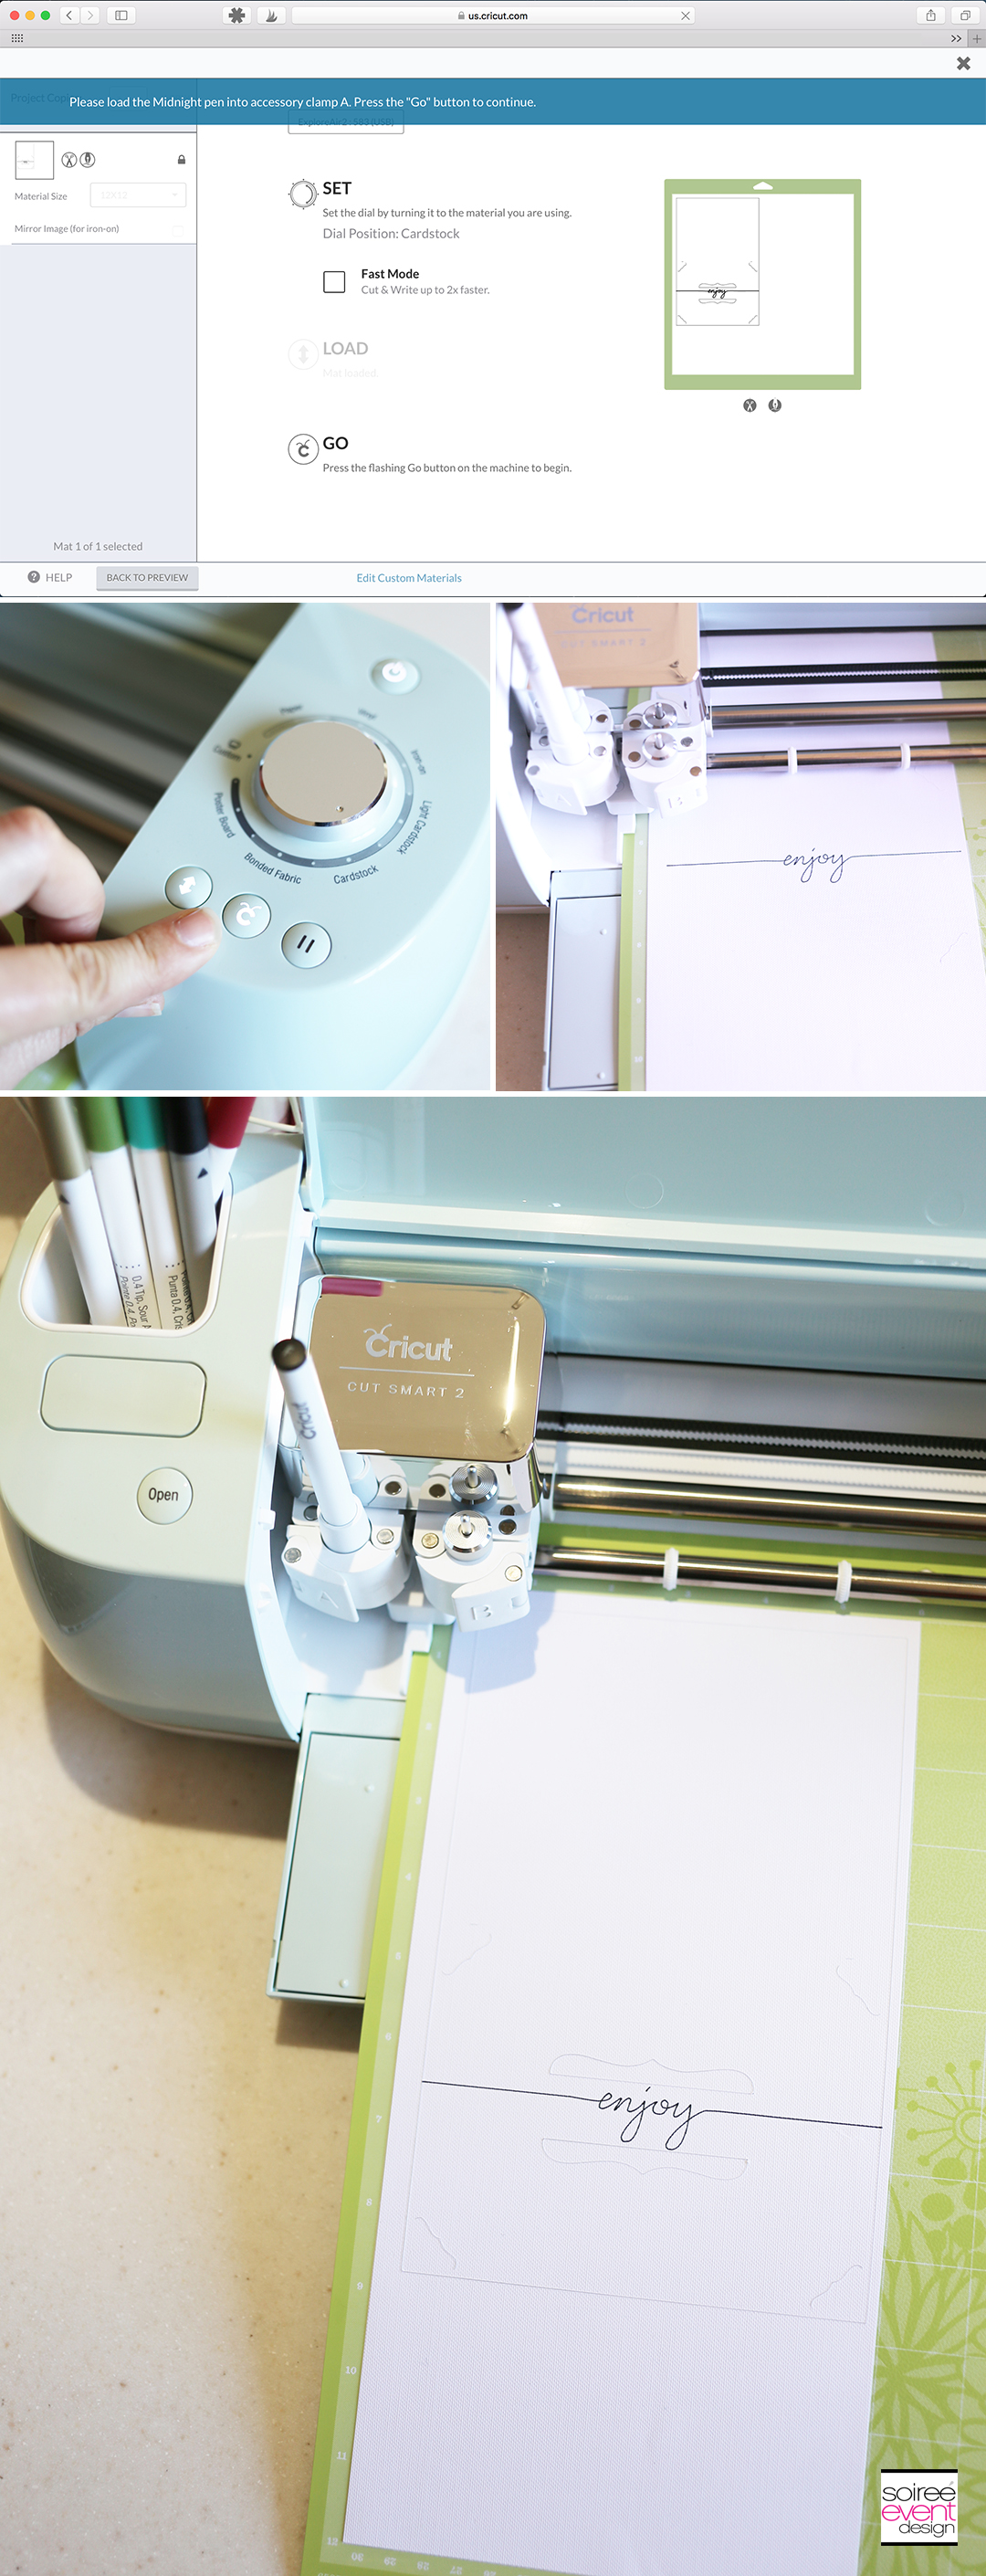 Make a Card with the Cricut Explore Air 2 - Step 4